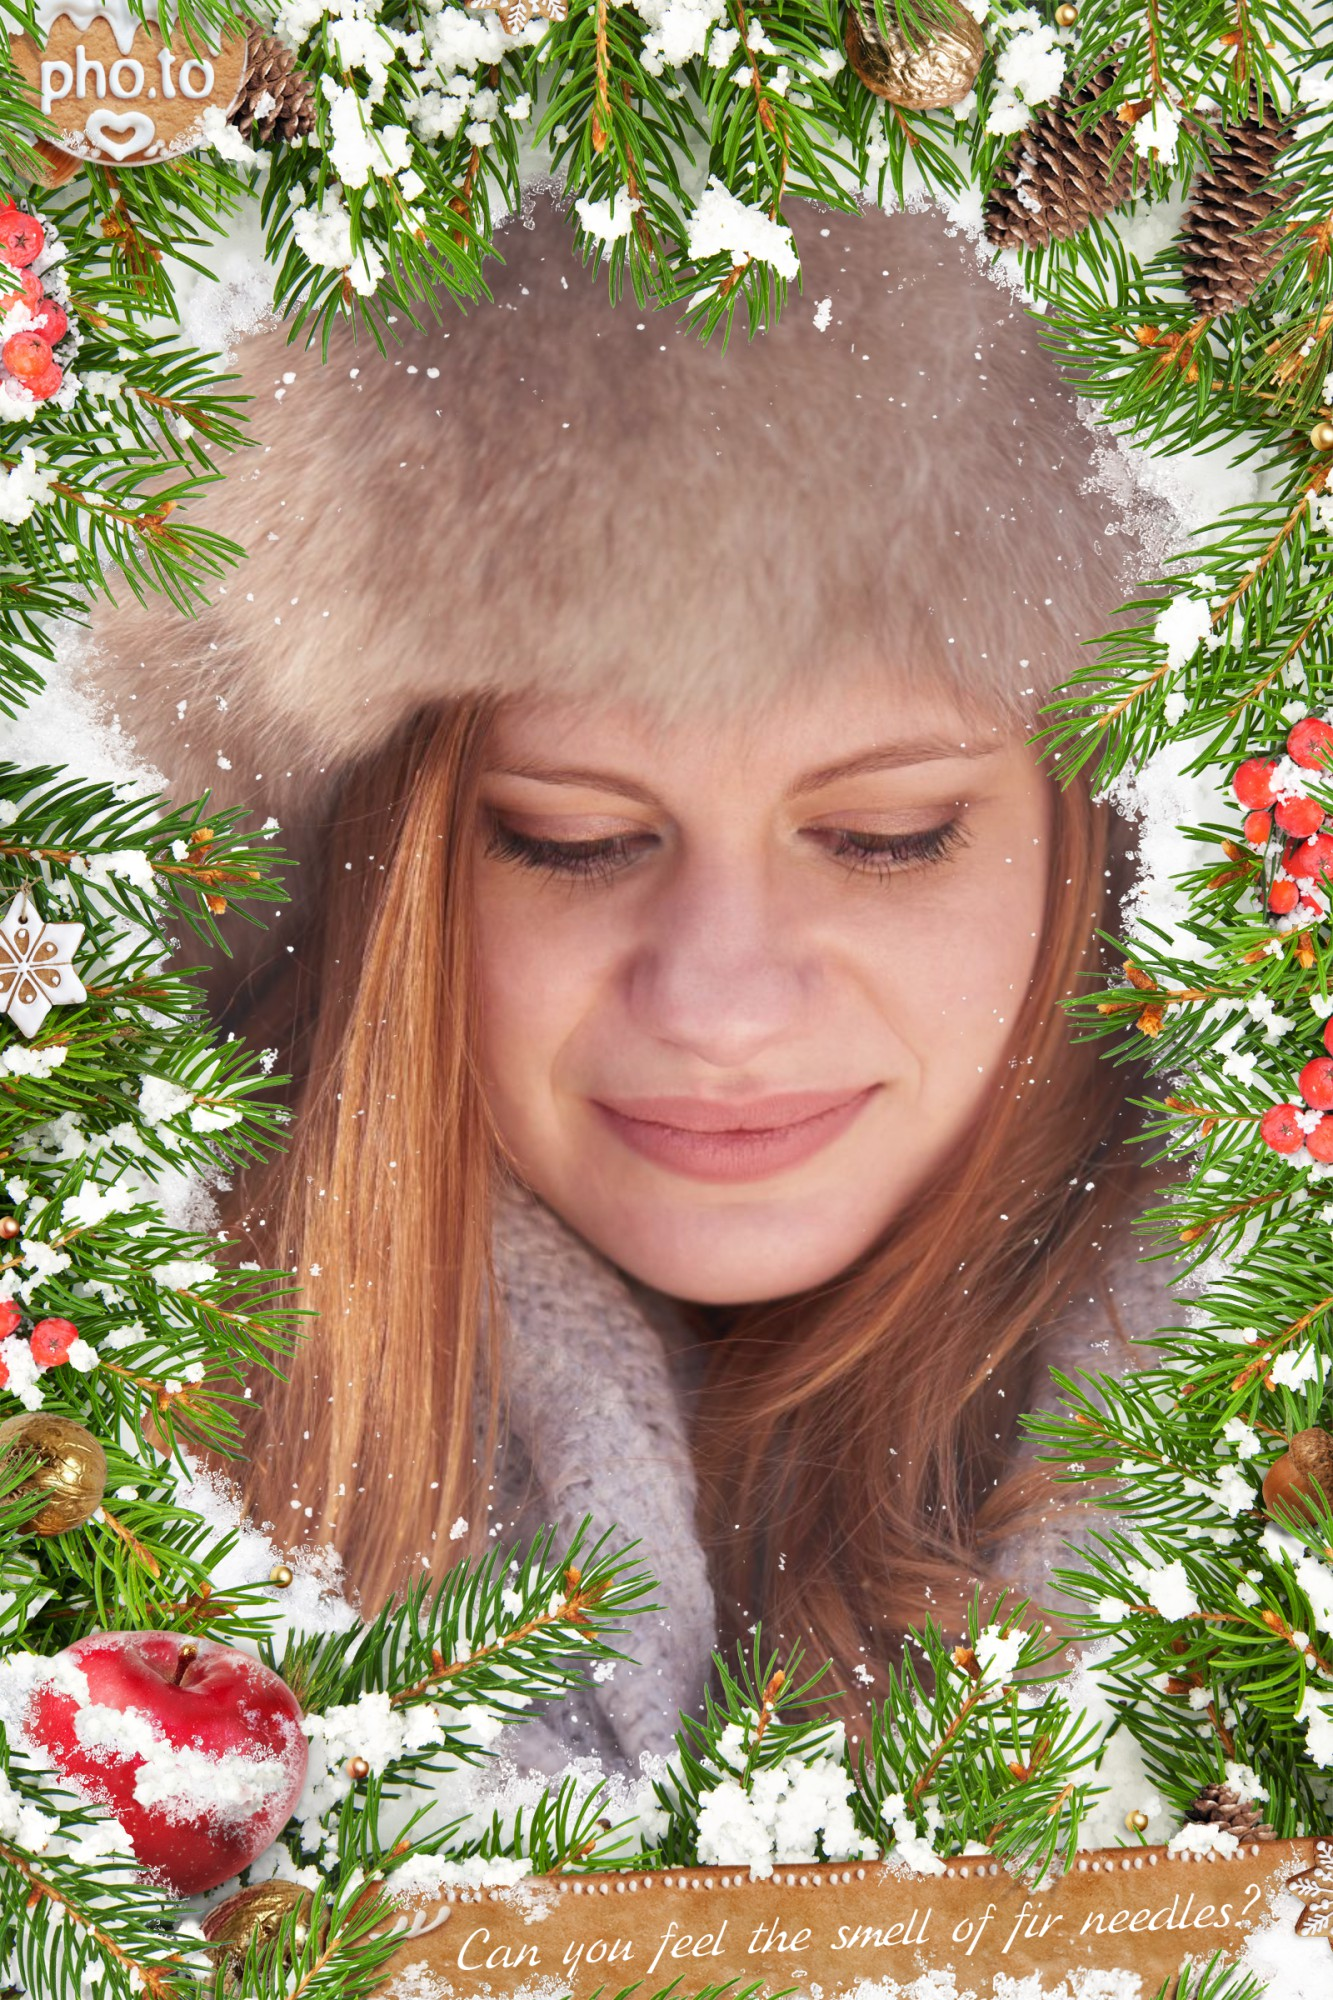 A woman's photo is surrounded with fir needles and pine cones in the snow